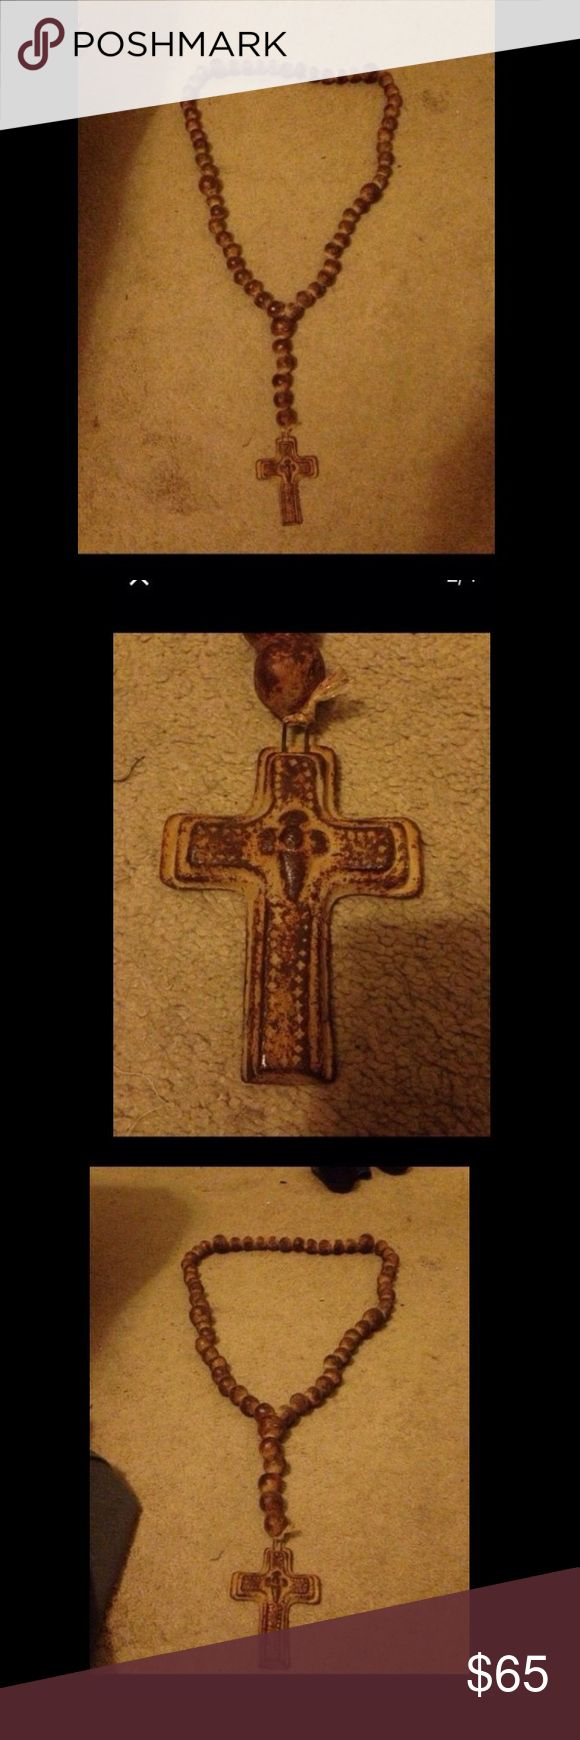 Terracotta Rosary This is a absolutely beautiful Rosary to hang on your wall it's made from Terracotta open to reasonable offers please consider Posh fees thank you for looking Other